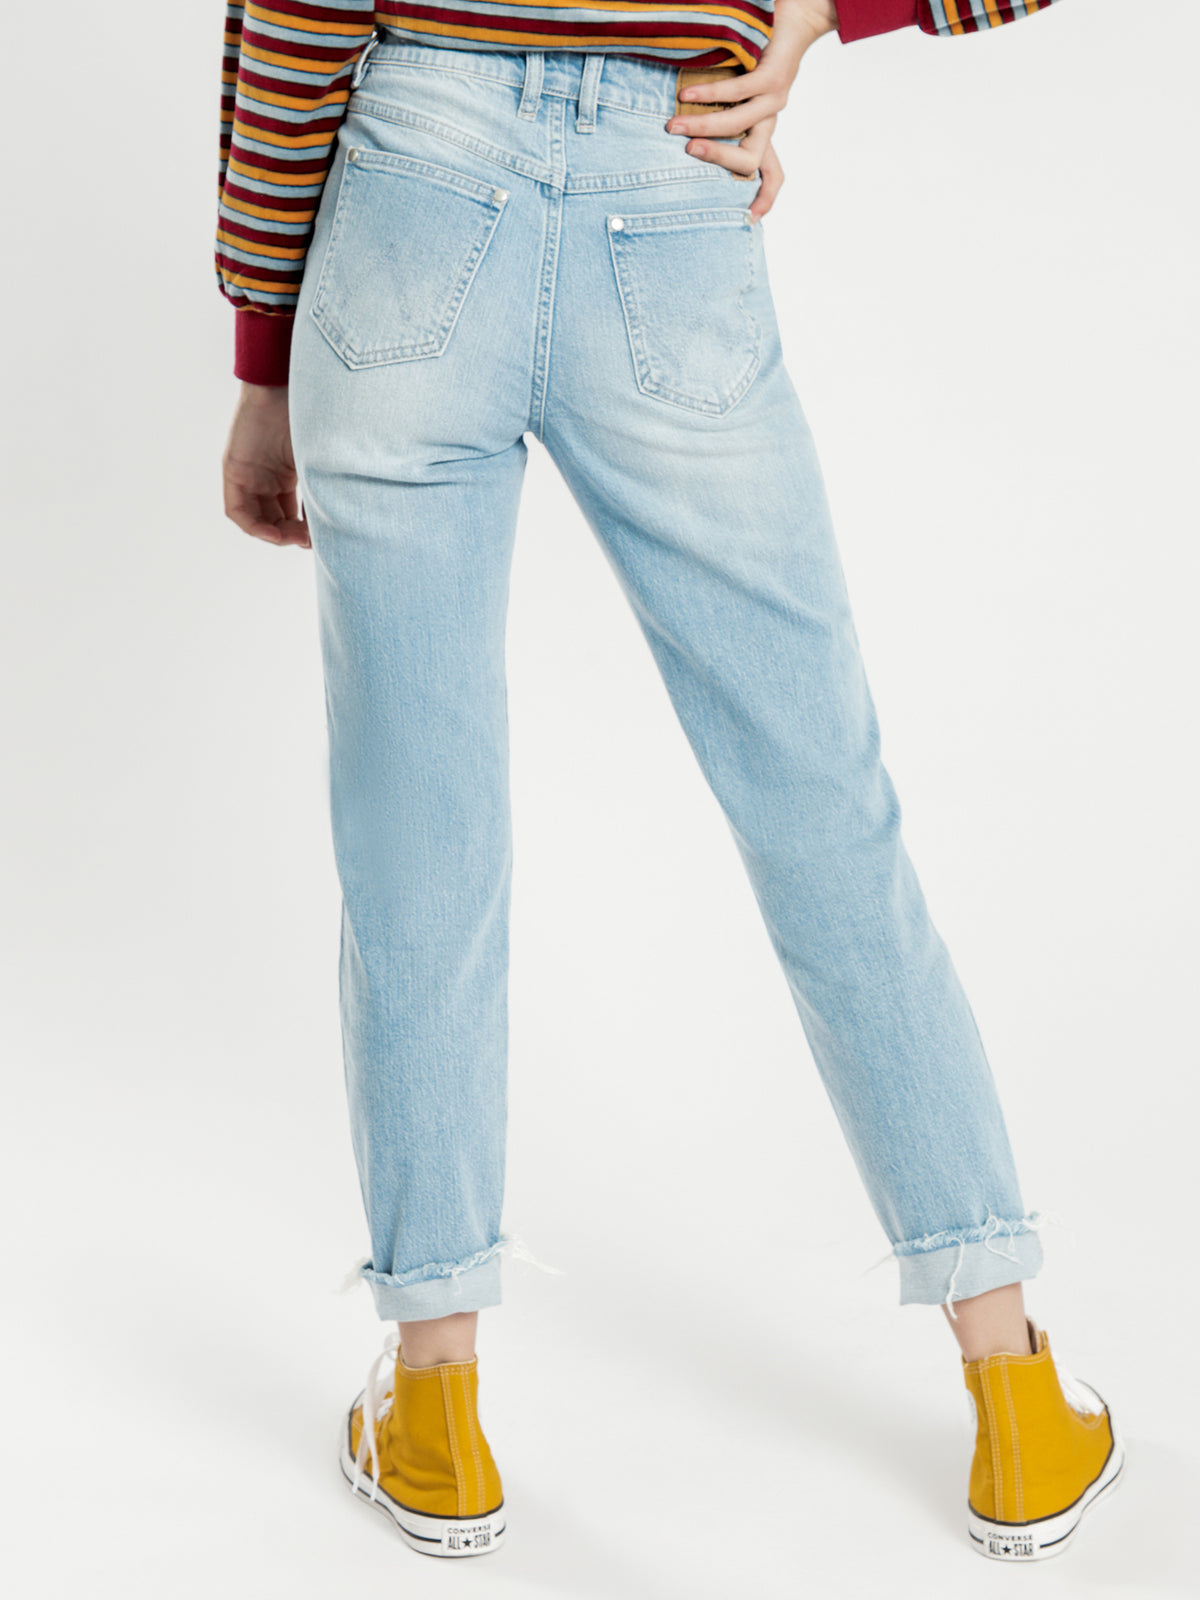 Drew Jeans in Coyote Blue Denim